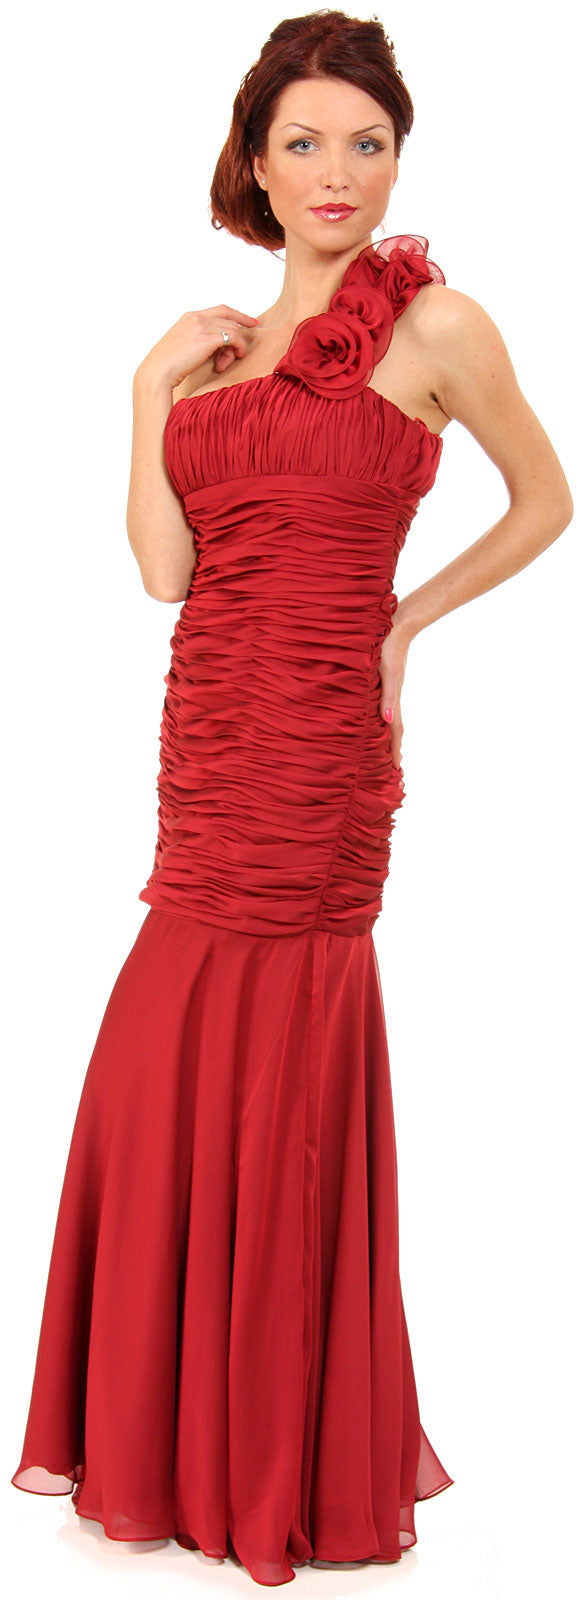 Main image of Shirred Single Shoulder Formal Evening Dress